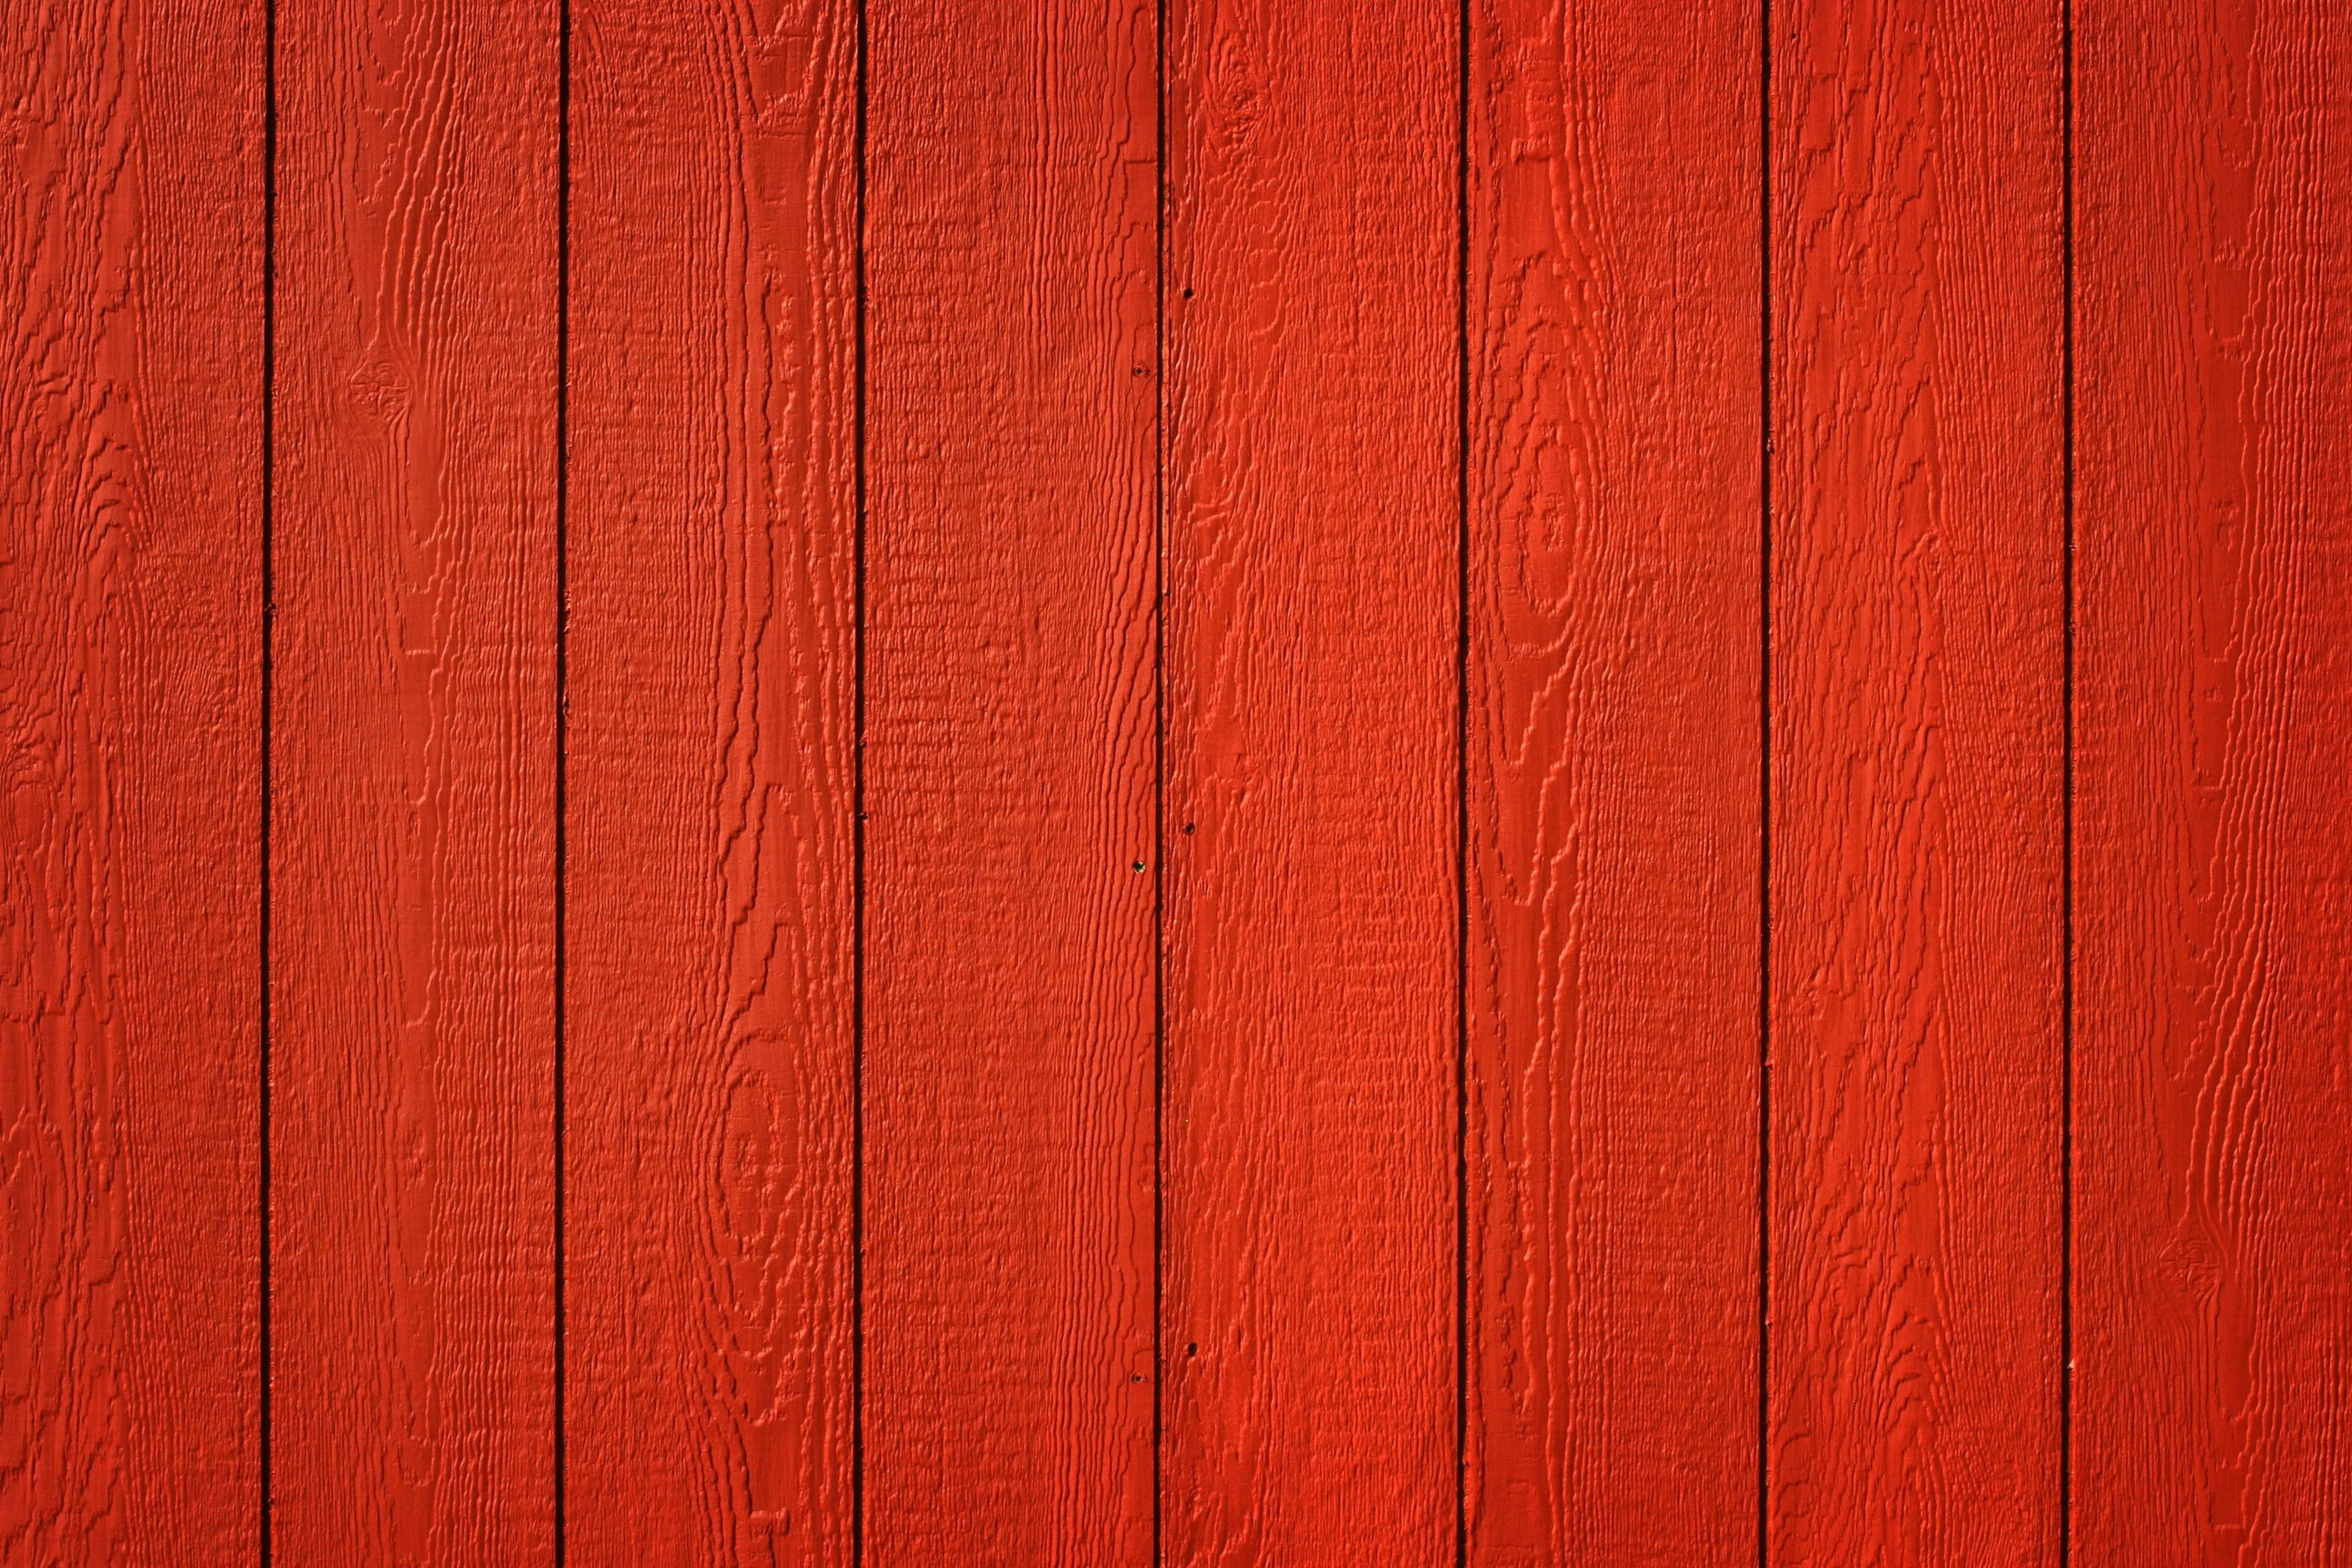 free texture red barn wood | רקעים | Pinterest | Red barns, Barn ...